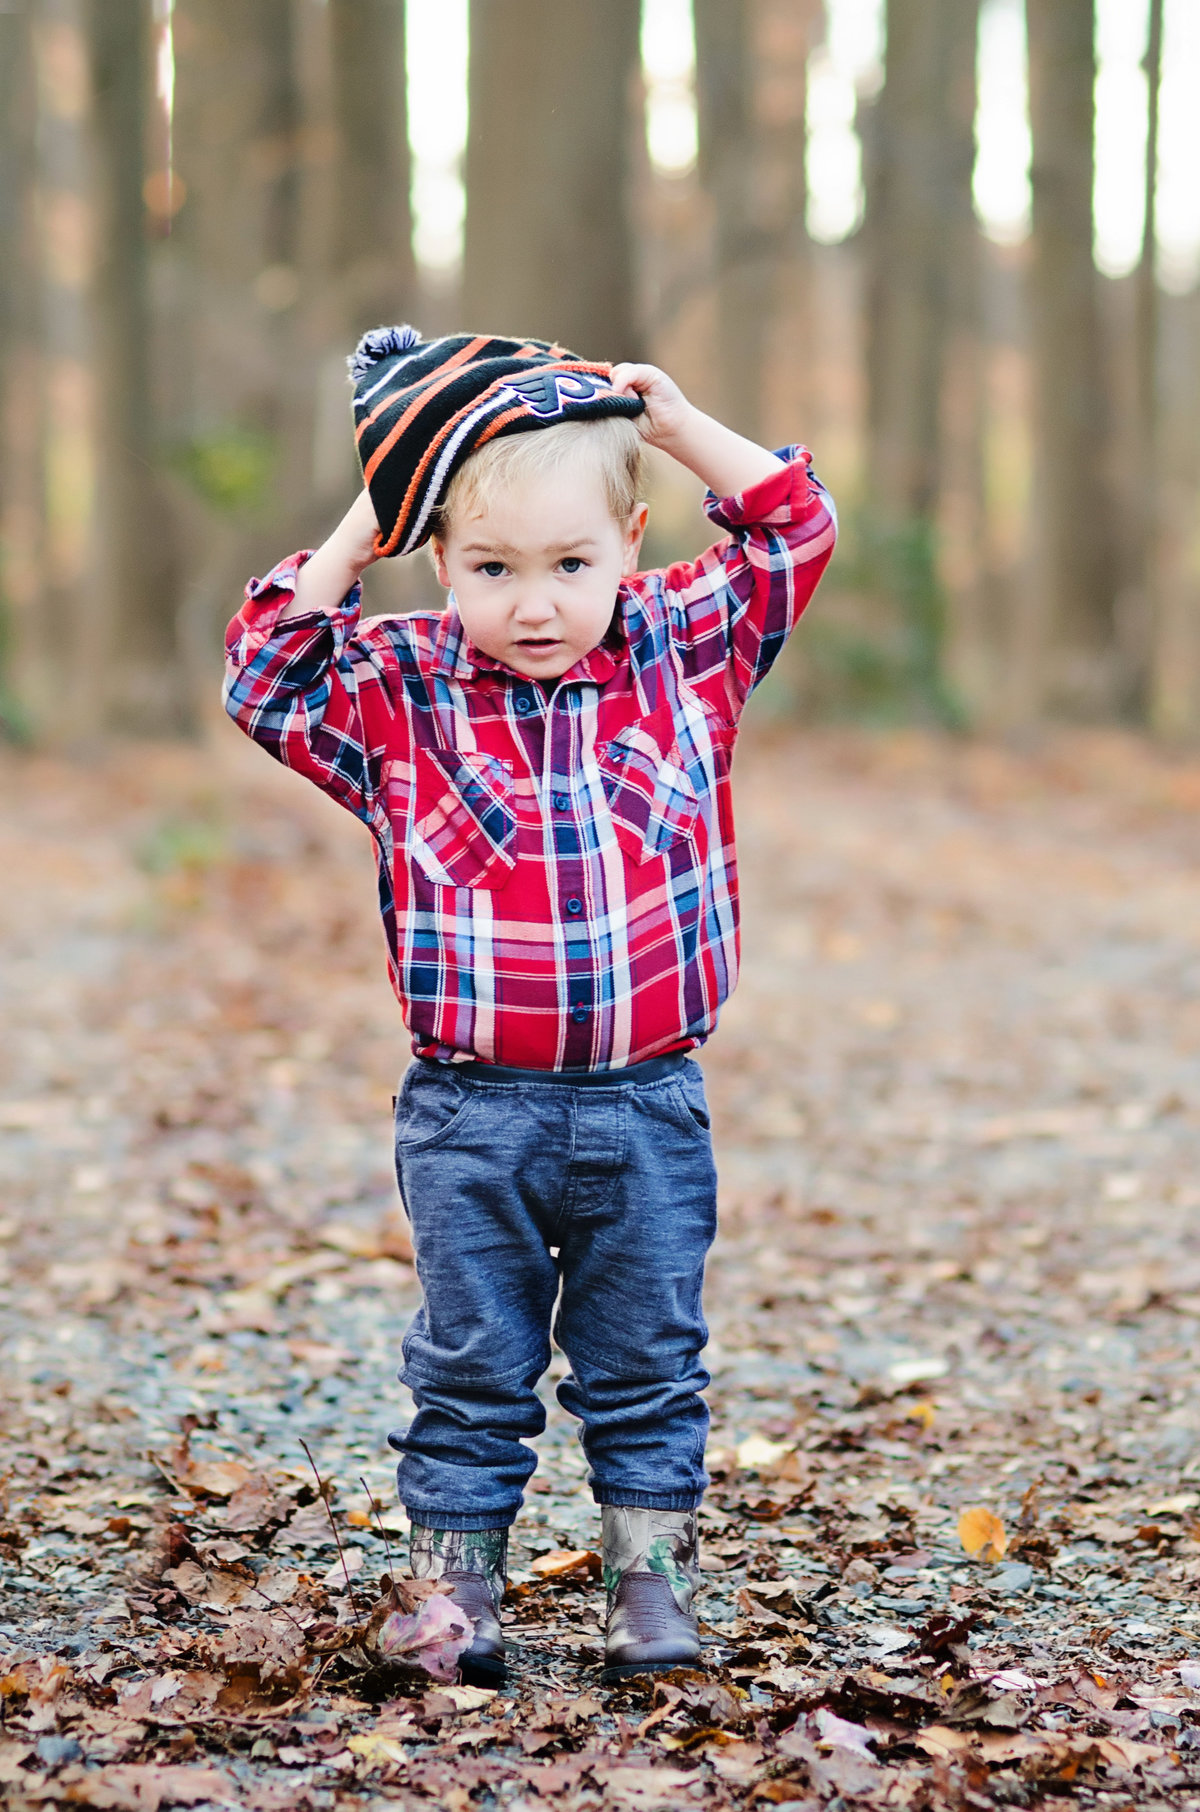 Portrait of a cute toddler putting a hat on during a family session at Nottoway Park in Norther Virginia taken by Sarah Alice Photography